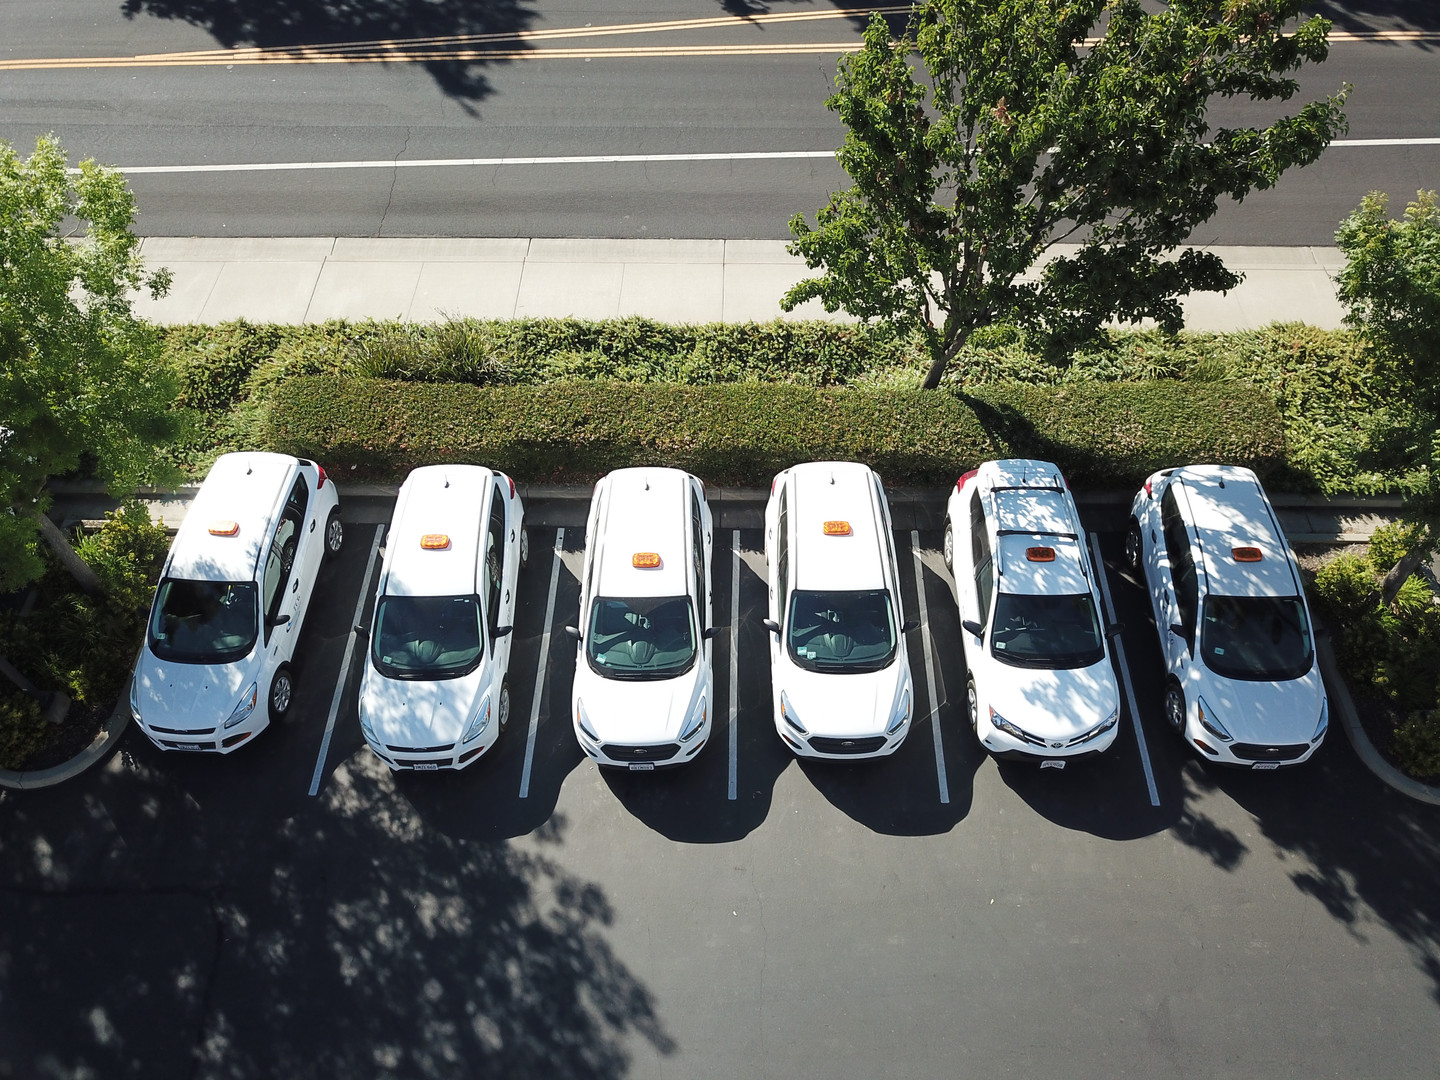 Our fleet has since grown to 10 cars.